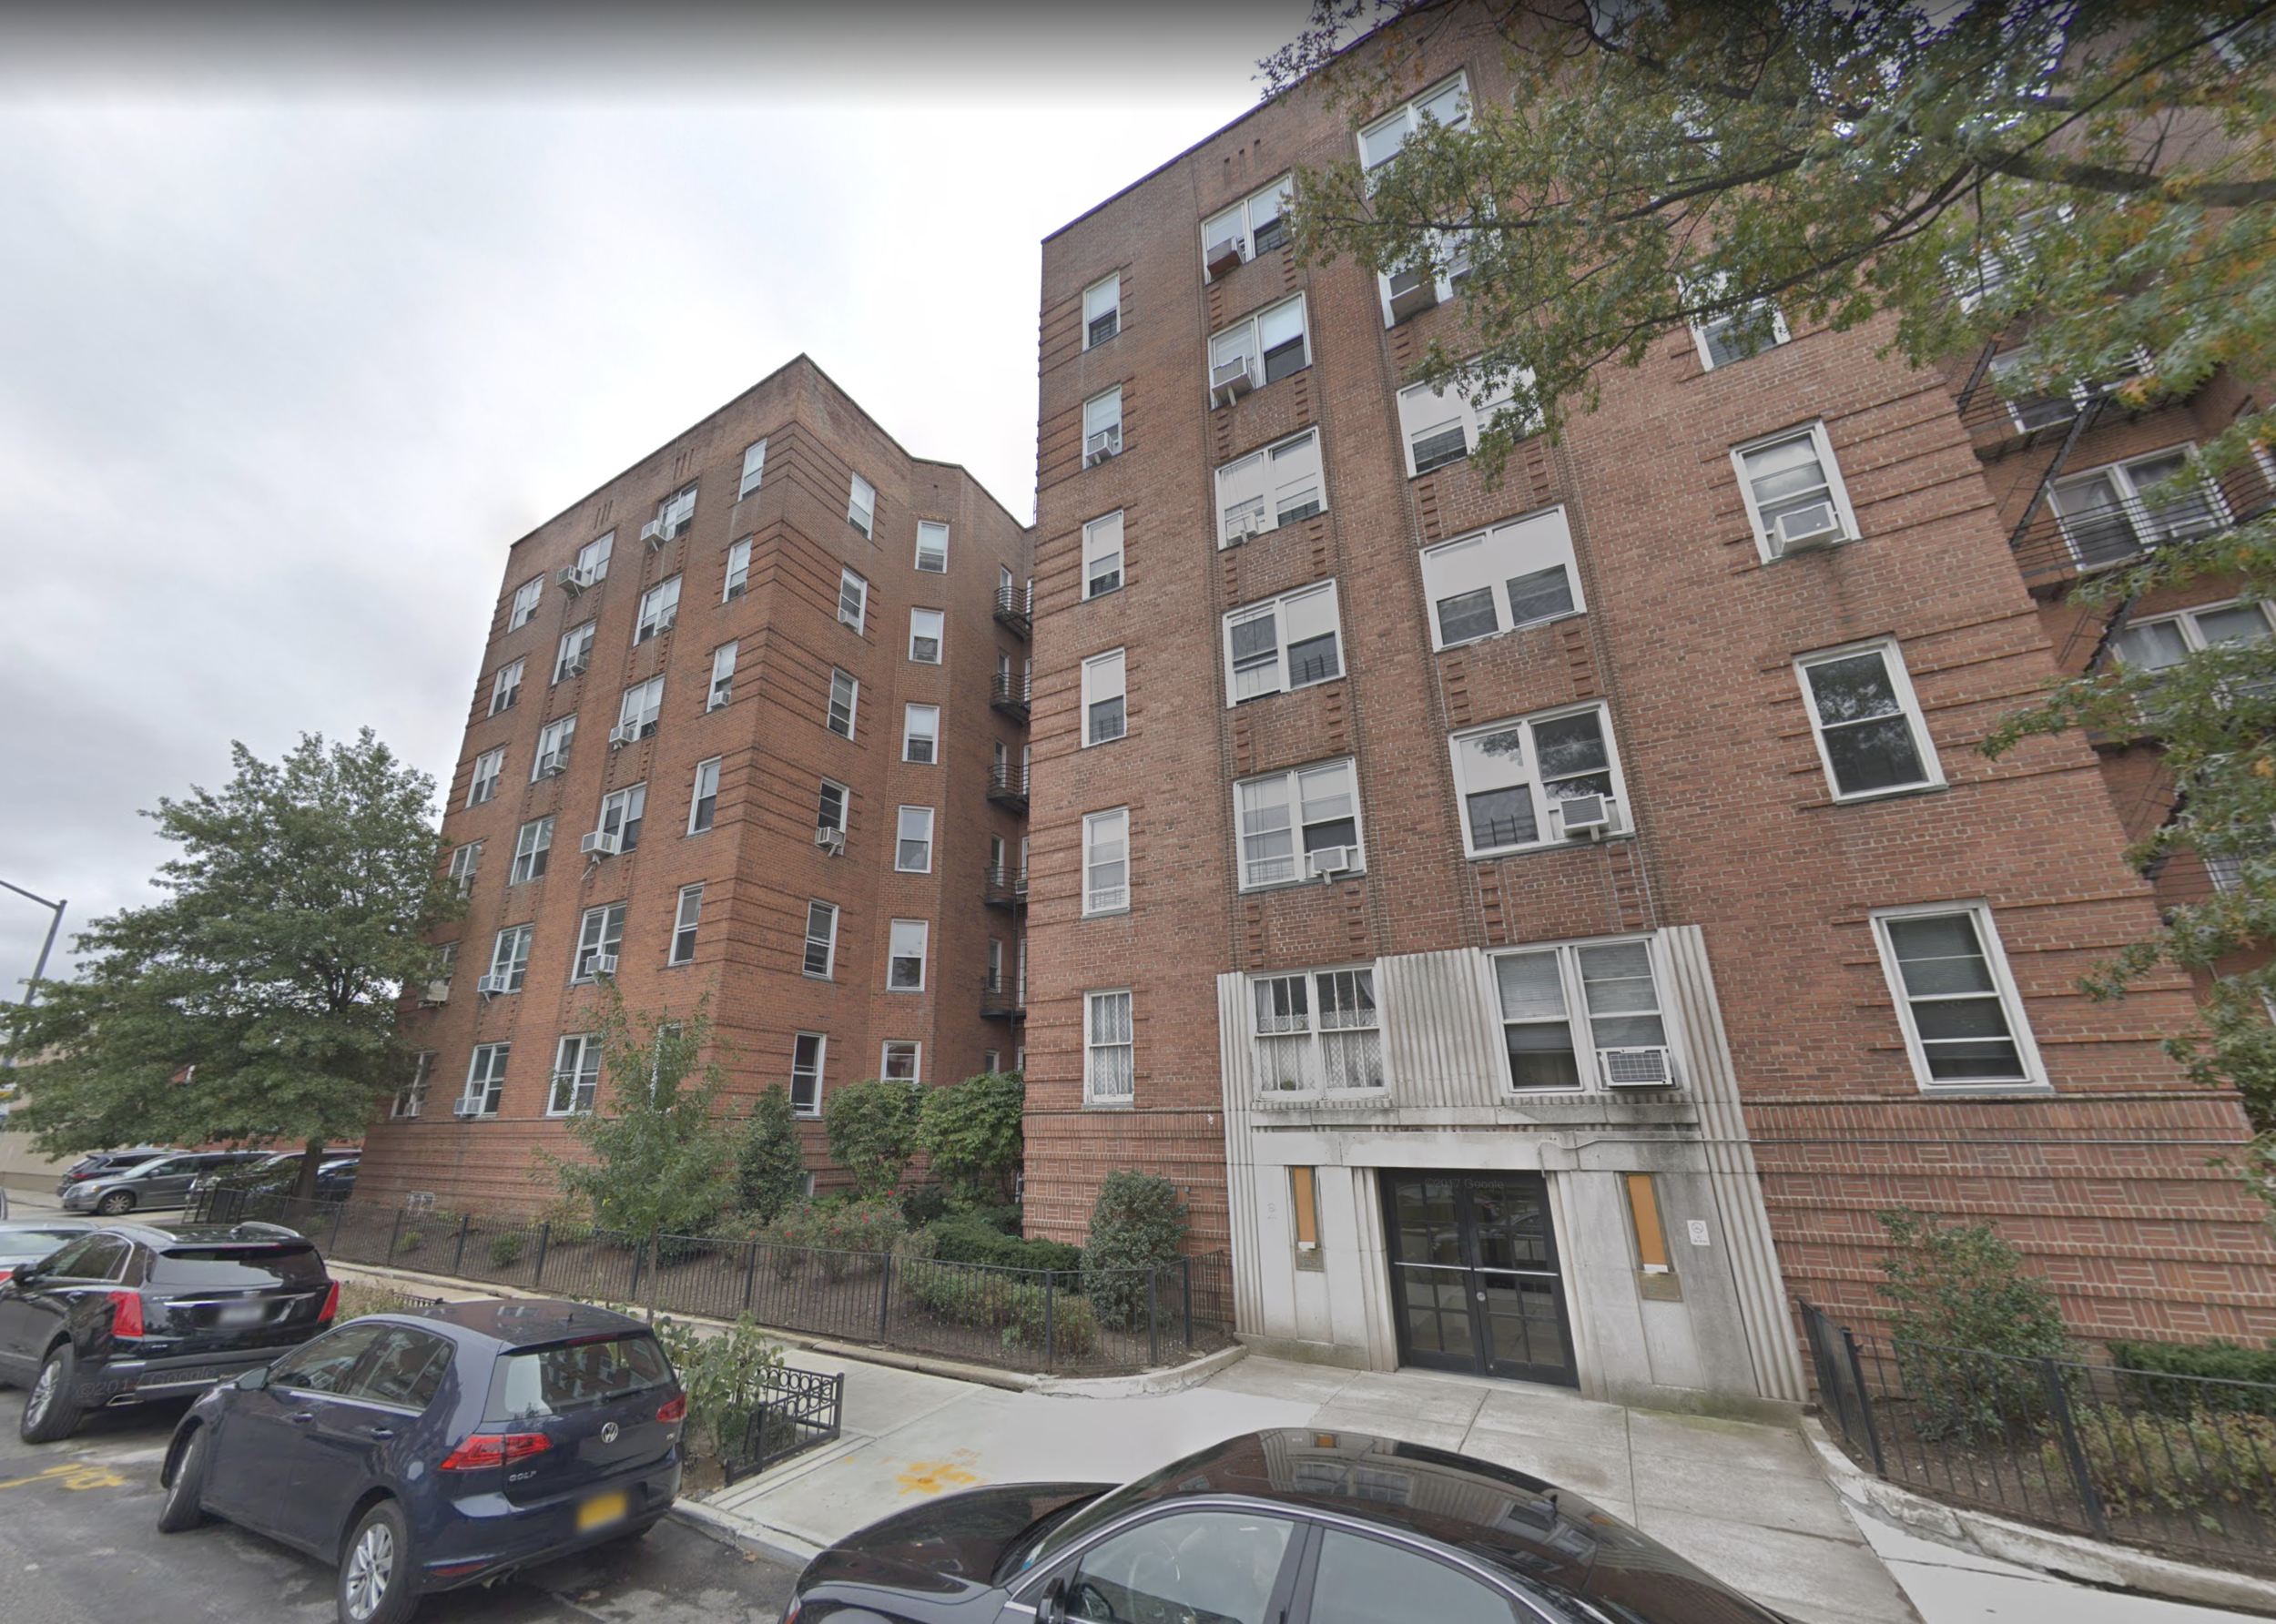 Tenants who lived at an apartment complex at 111-32 76th Ave. in Forest Hills are eligible to become plaintiffs in a class action lawsuit against the LLC that owns the property and allegedly violated rent stabilization laws. Photo via Google Maps.